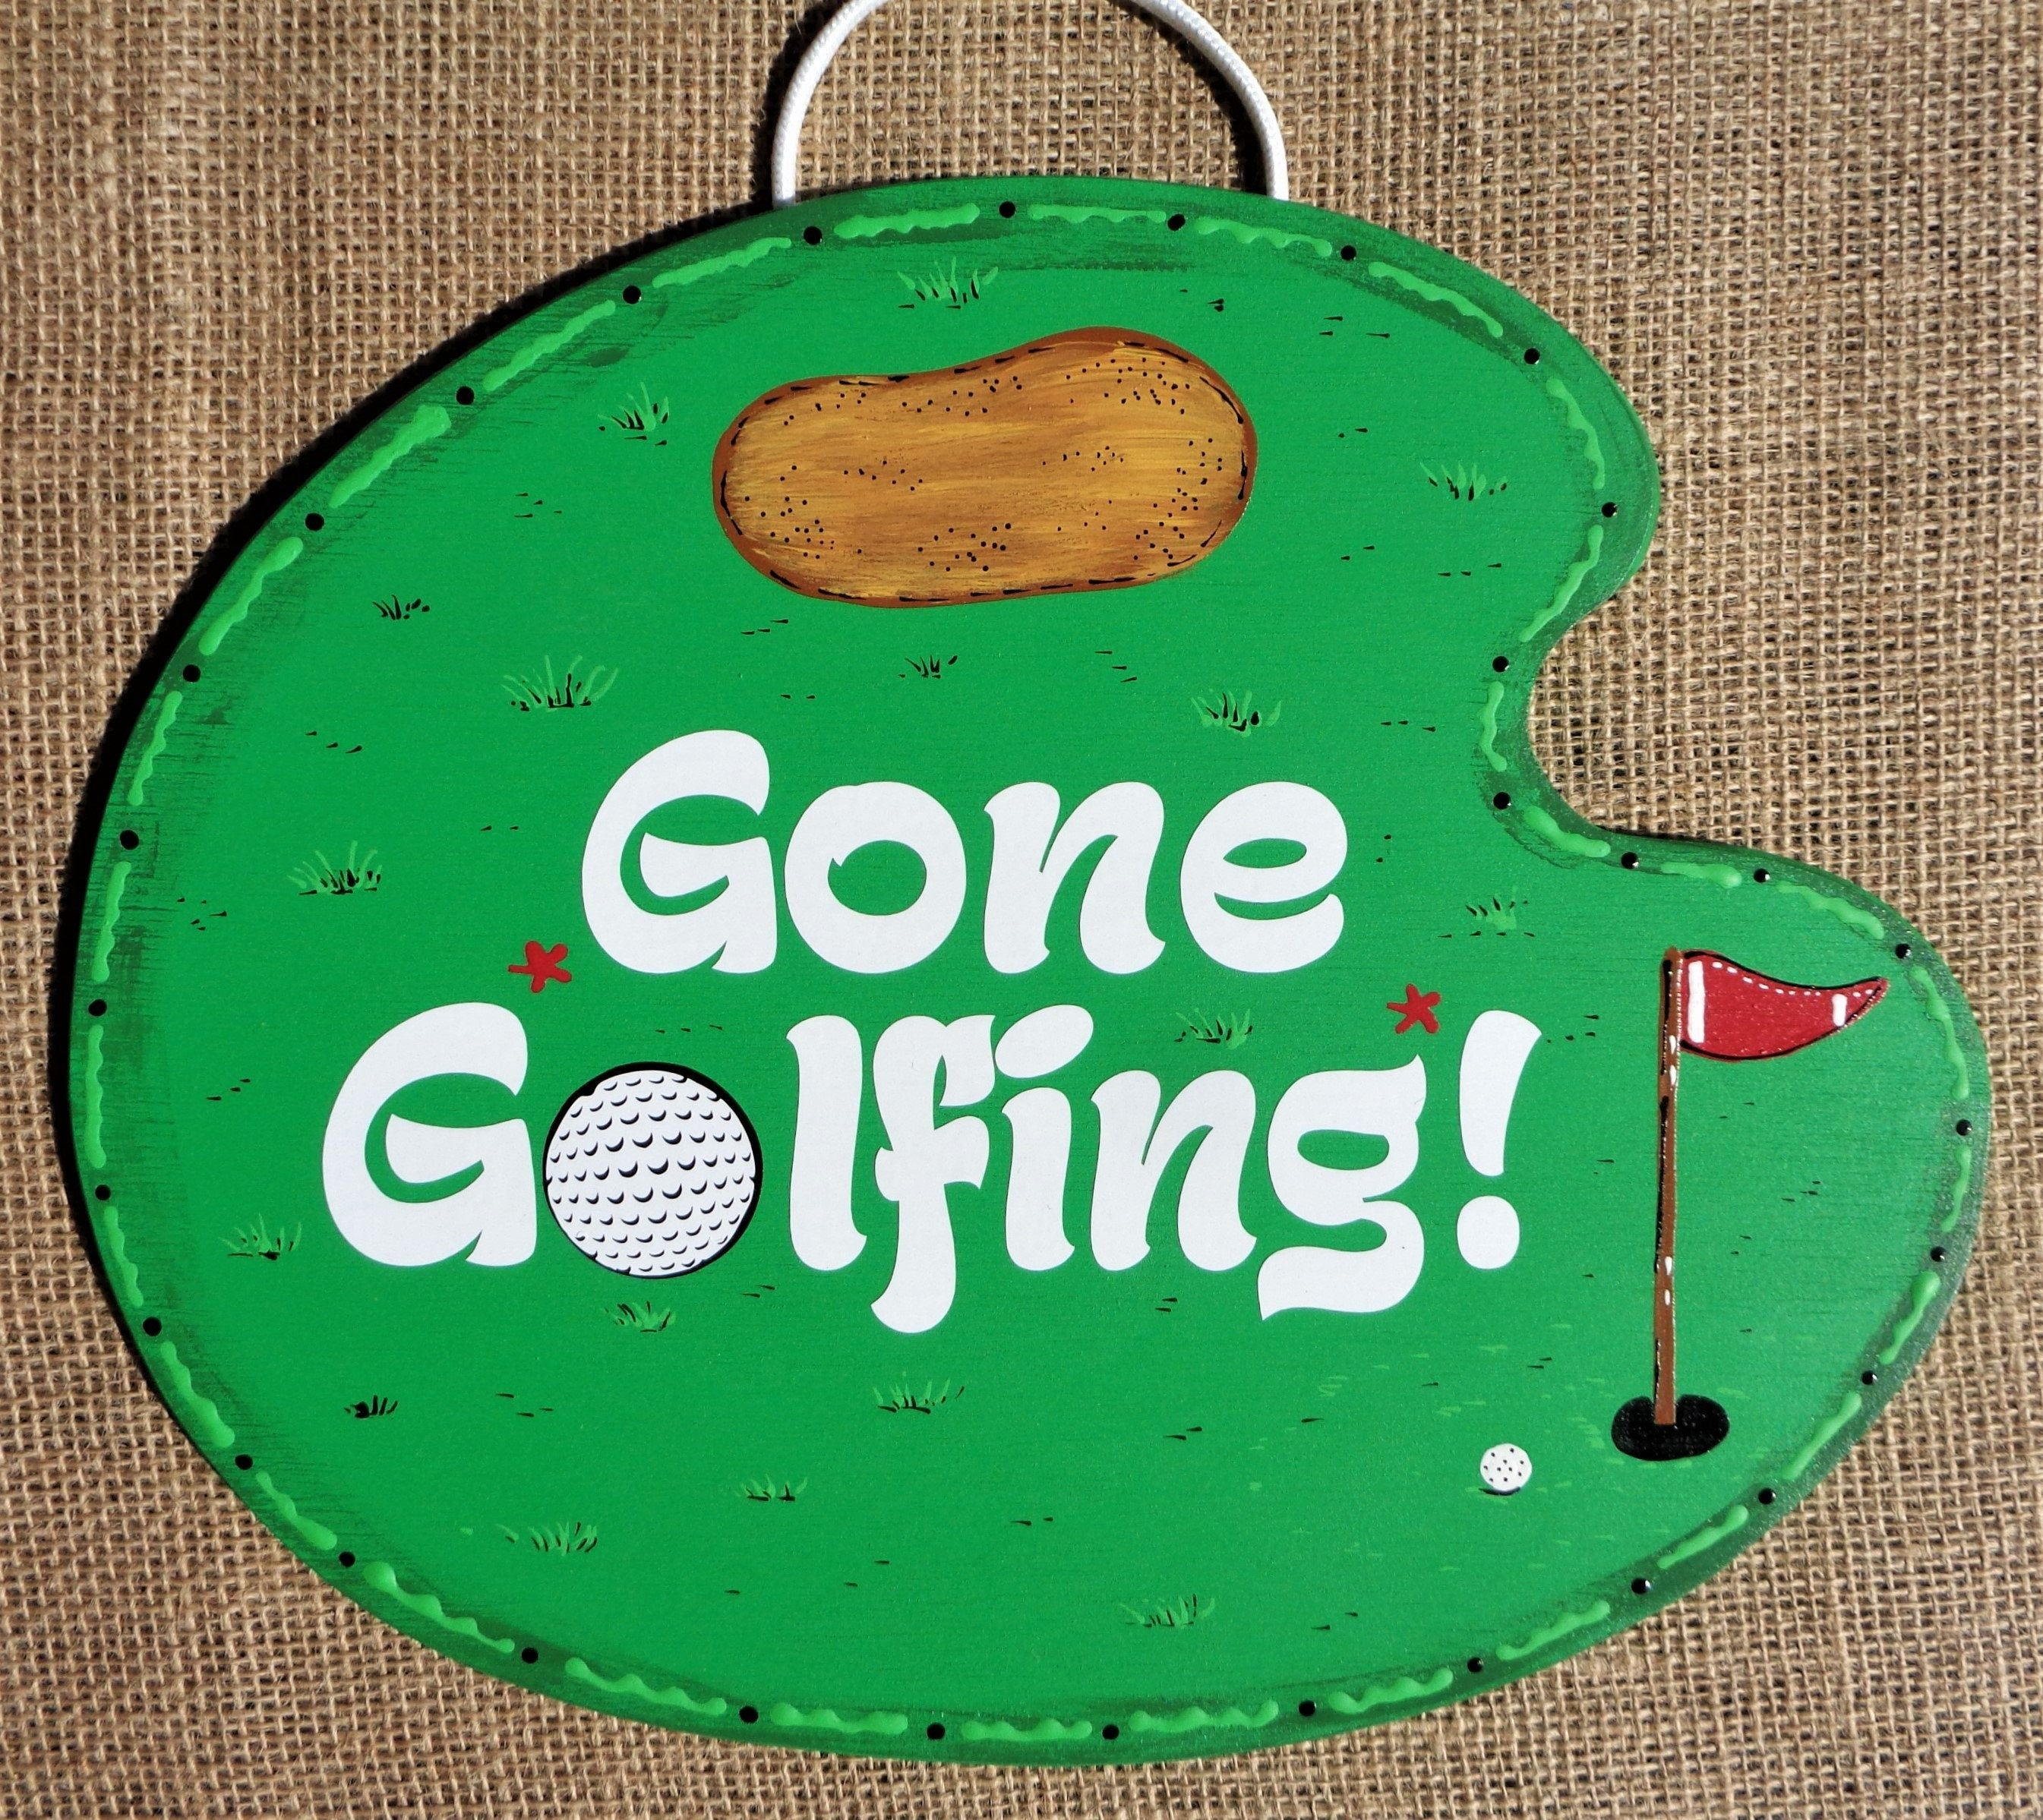 Gone Golfing Sign Wall Art Golf Door Hanger Sport Plaque Home Family Deck Patio Summer Decor Handcrafted Hand In 2020 Wall Signs Hand Painted Decor Painted Wood Signs